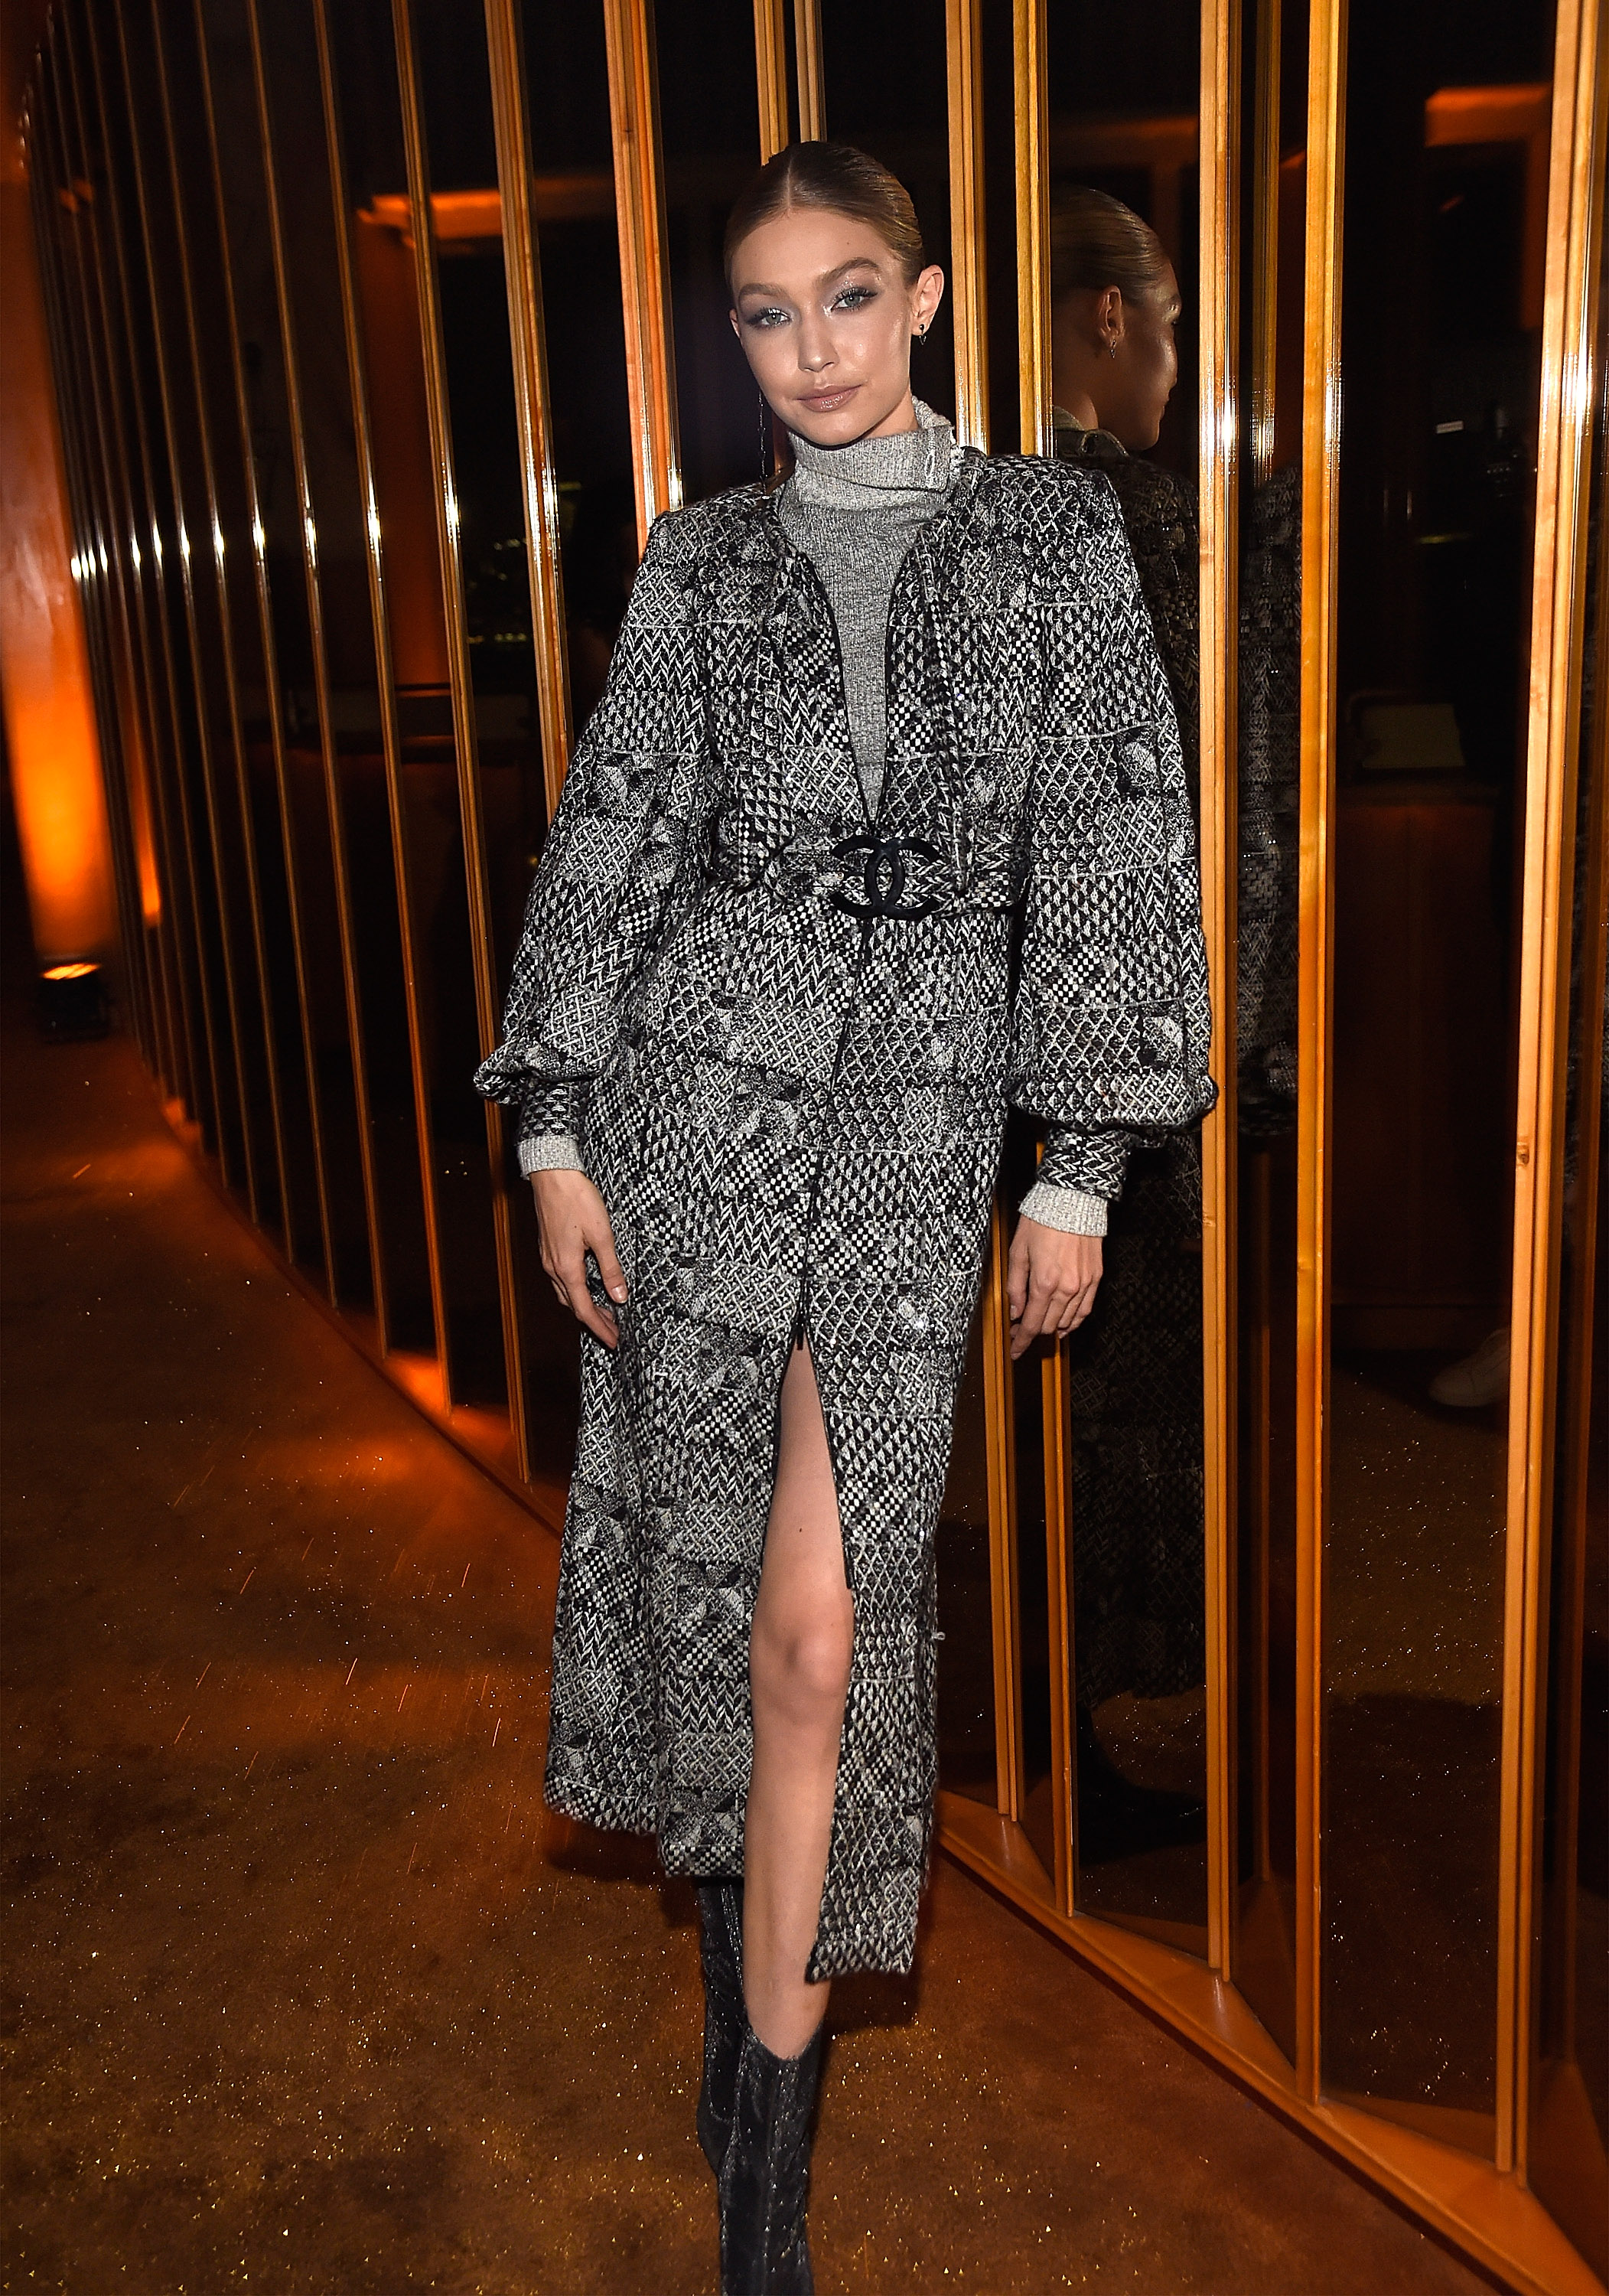 """<p>V Magazine hosted a star-studded bash in New York City, last night, to honour legendary fashion designer Karl Lagerfeld.</p> <p>But one person who may not have been there a few years ago is model Gigi Hadid.</p> <p>The 22-year-old revealed she wasn't sure if the creative director of Chanel even knew her name when she attended her first-ever casting for the French fashion house in 2014.</p> <p>""""It was my first fitting for my first Chanel show that I got, and obviously, you expect for Karl to be there in the fitting when you get there,"""" Hadid said to<a href=""""http://wwd.com/eye/parties/mariah-carey-welcomes-hero-karl-lagerfeld-to-new-york-11034559/"""" target=""""_blank"""" draggable=""""false"""">Women's Wear Daily.</a></p> <p>""""But I wasn't quite prepared because the second I walked into the building Karl and Anna (Wintour) walk out together, going to lunch — and I hadn't met either of them yet,""""</p> <p>""""So, walking into that and just having to introduce myself like 'Hi, I'm Gigi, I don't know if you care'.""""</p> <p>Now, as one of Lagerfeld's go-to models, Hadidarrived last night in head-to-toe Chanel alongside her sister Bella and mother Yolanda. </p> <p>The stylish trio joined other big names in the fashion and entertainment industries such as Naomi Campbell, Joan Smalls and Australian film director Baz Luhhrman, to celebrate the illustrious career of Lagerfeld.</p> <p>Mariah Carey finished off the night with a performance of  some of her biggest hits such as 'Touch my body', 'Hero' and 'We belong together'.</p> <p>Click through to see more of Gigi, Bella and  the other stylish celebrities who came to celebrate Karl.</p>"""